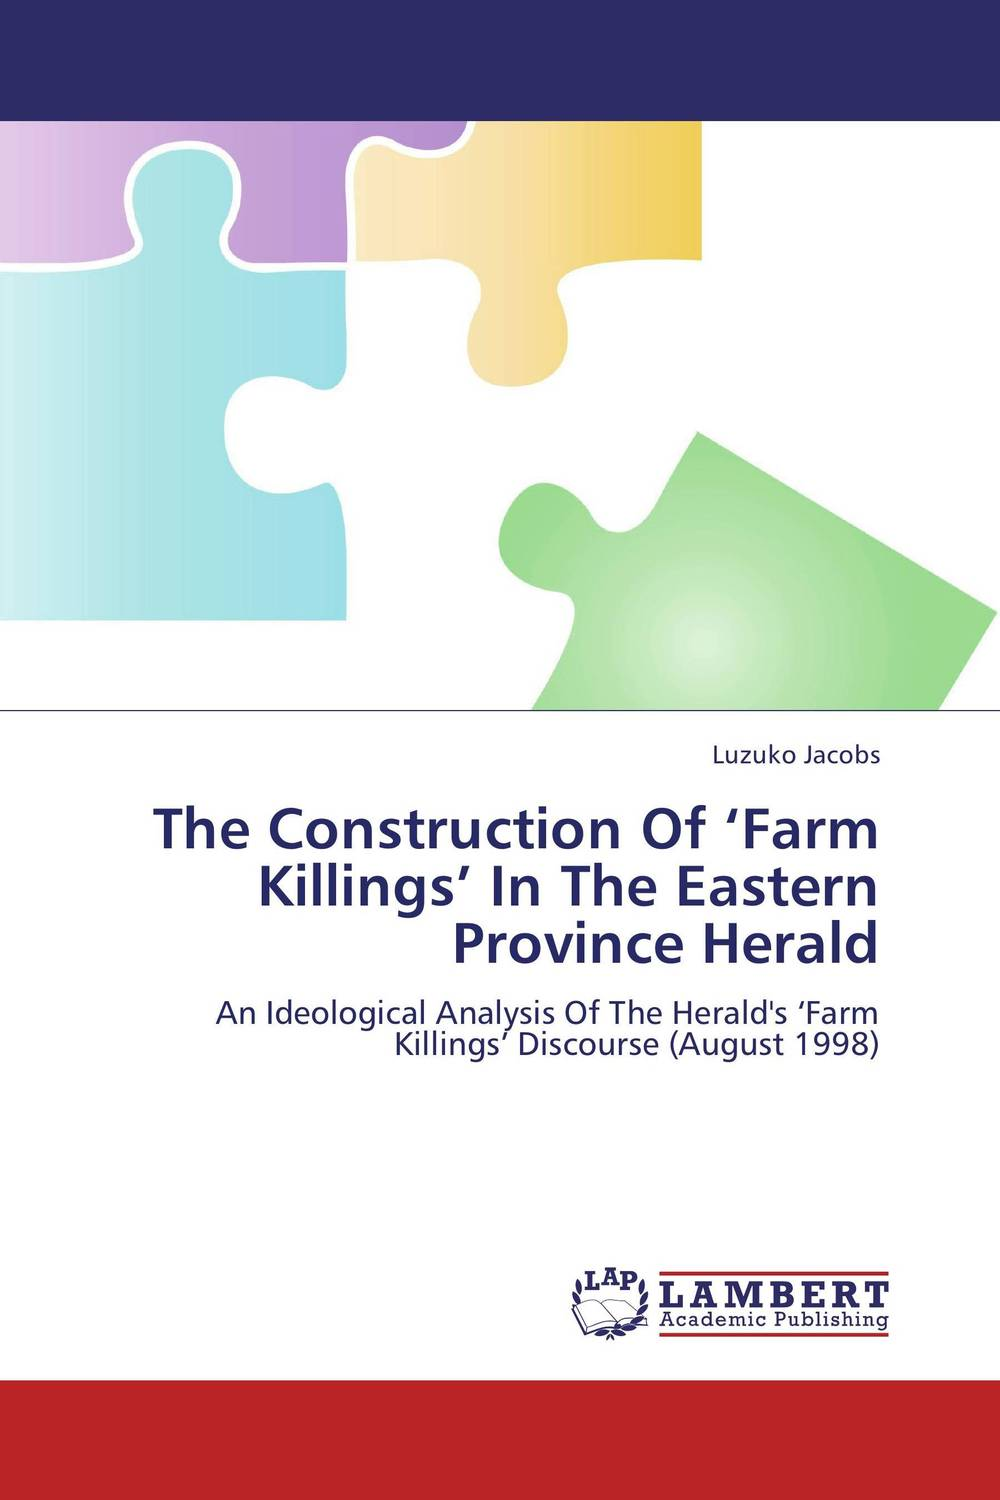 The Construction Of 'Farm Killings' In The Eastern Province Herald study of pose